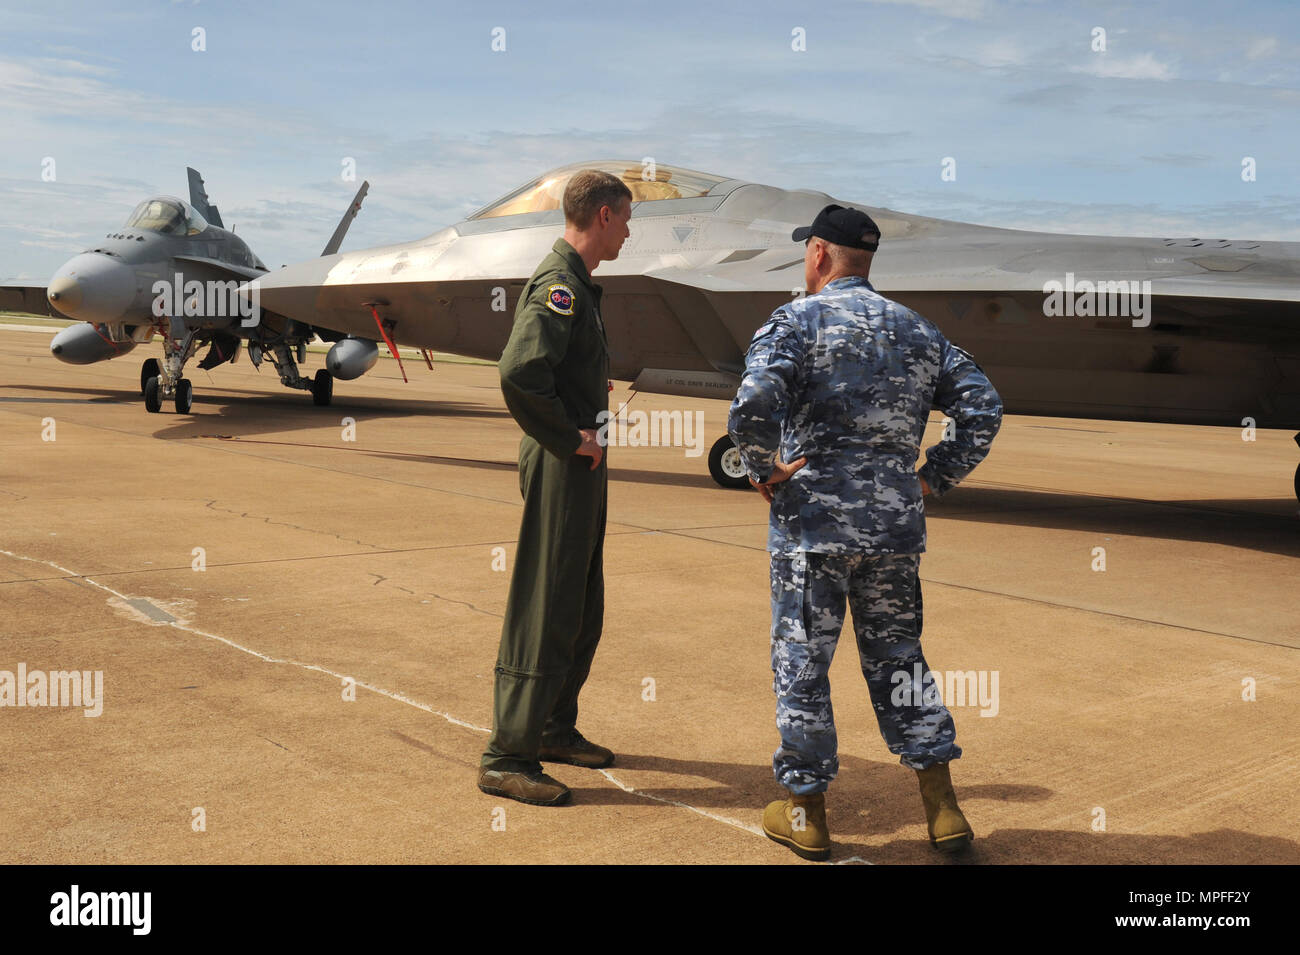 U.S. Air Force Lt. Col. David Skalicky, 90th Fighter Squadron commander, and Wing Commander Andrew Tatnell, Royal Australian Air Force Base Tindal Senior Australian Defence Force Officer, discuss the combined capabilities of the RAAF F/A-18A/B Hornet and U.S. F-22 Raptor at RAAF Base Tindal, Australia, Feb. 24, 2017. Twelve F-22 Raptors and approximately 200 U.S. Air Force Airmen are in Australia as part of the Enhanced Air Cooperation, an initiative under the Force Posture Agreement between the U.S. and Australia. (U.S. Air Force photo by Staff Sgt. Alexander Martinez) - Stock Image